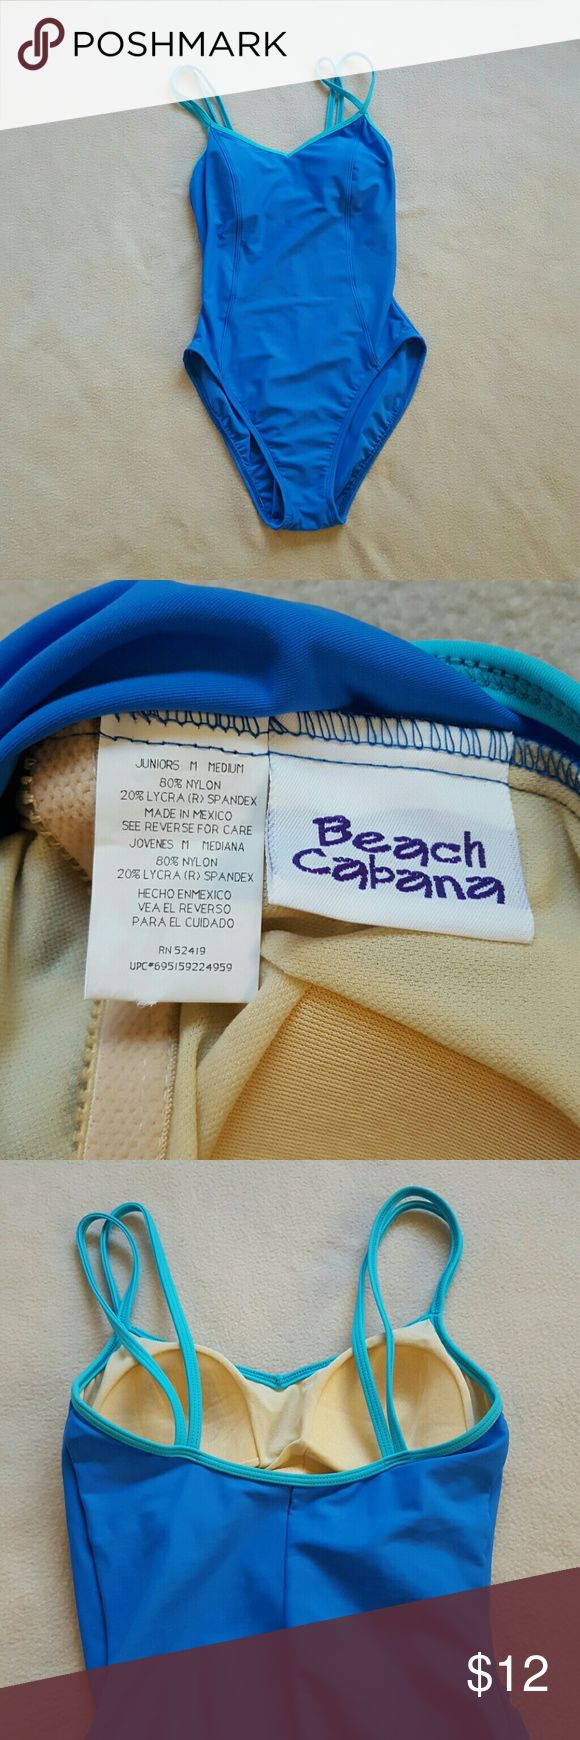 Beach Cabana blue one piece swimsuit. Blue one piece swimsuit, light blue straps, lightly padded sewn in cups, excellent condition. Beach Cabana Swim One Pieces